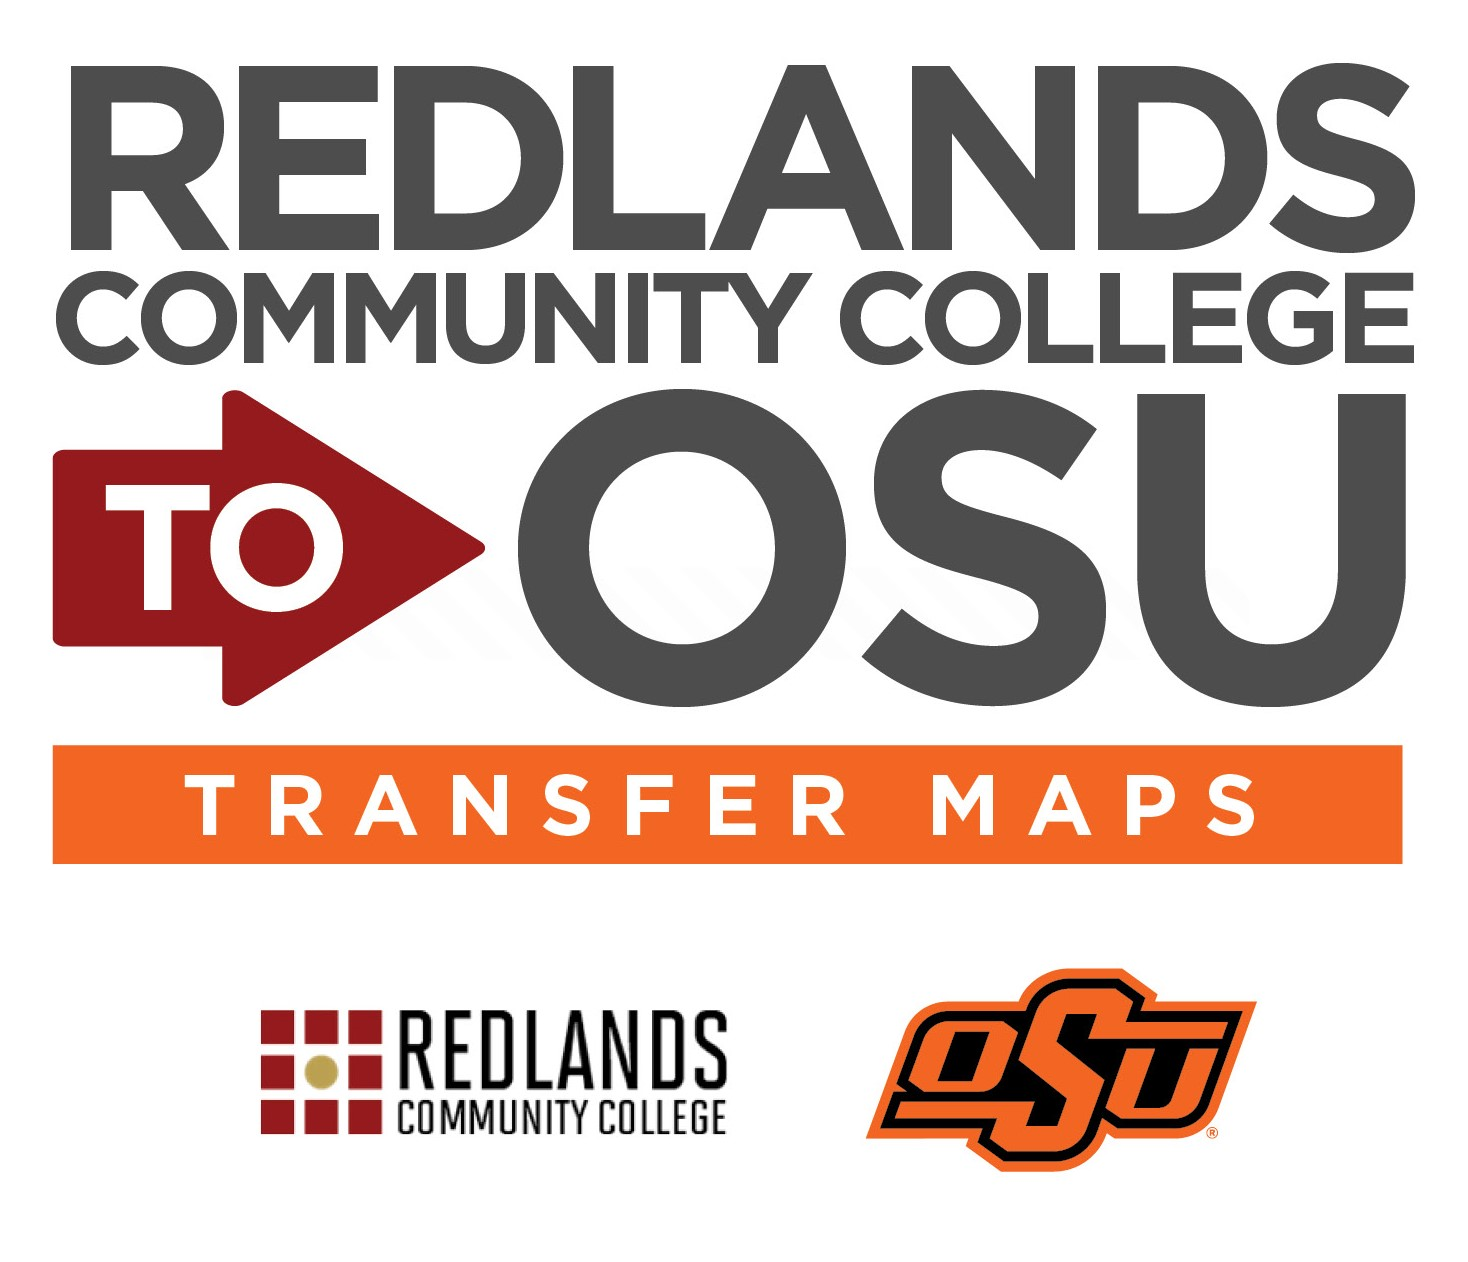 Redlands CC to OSU Transfer Map